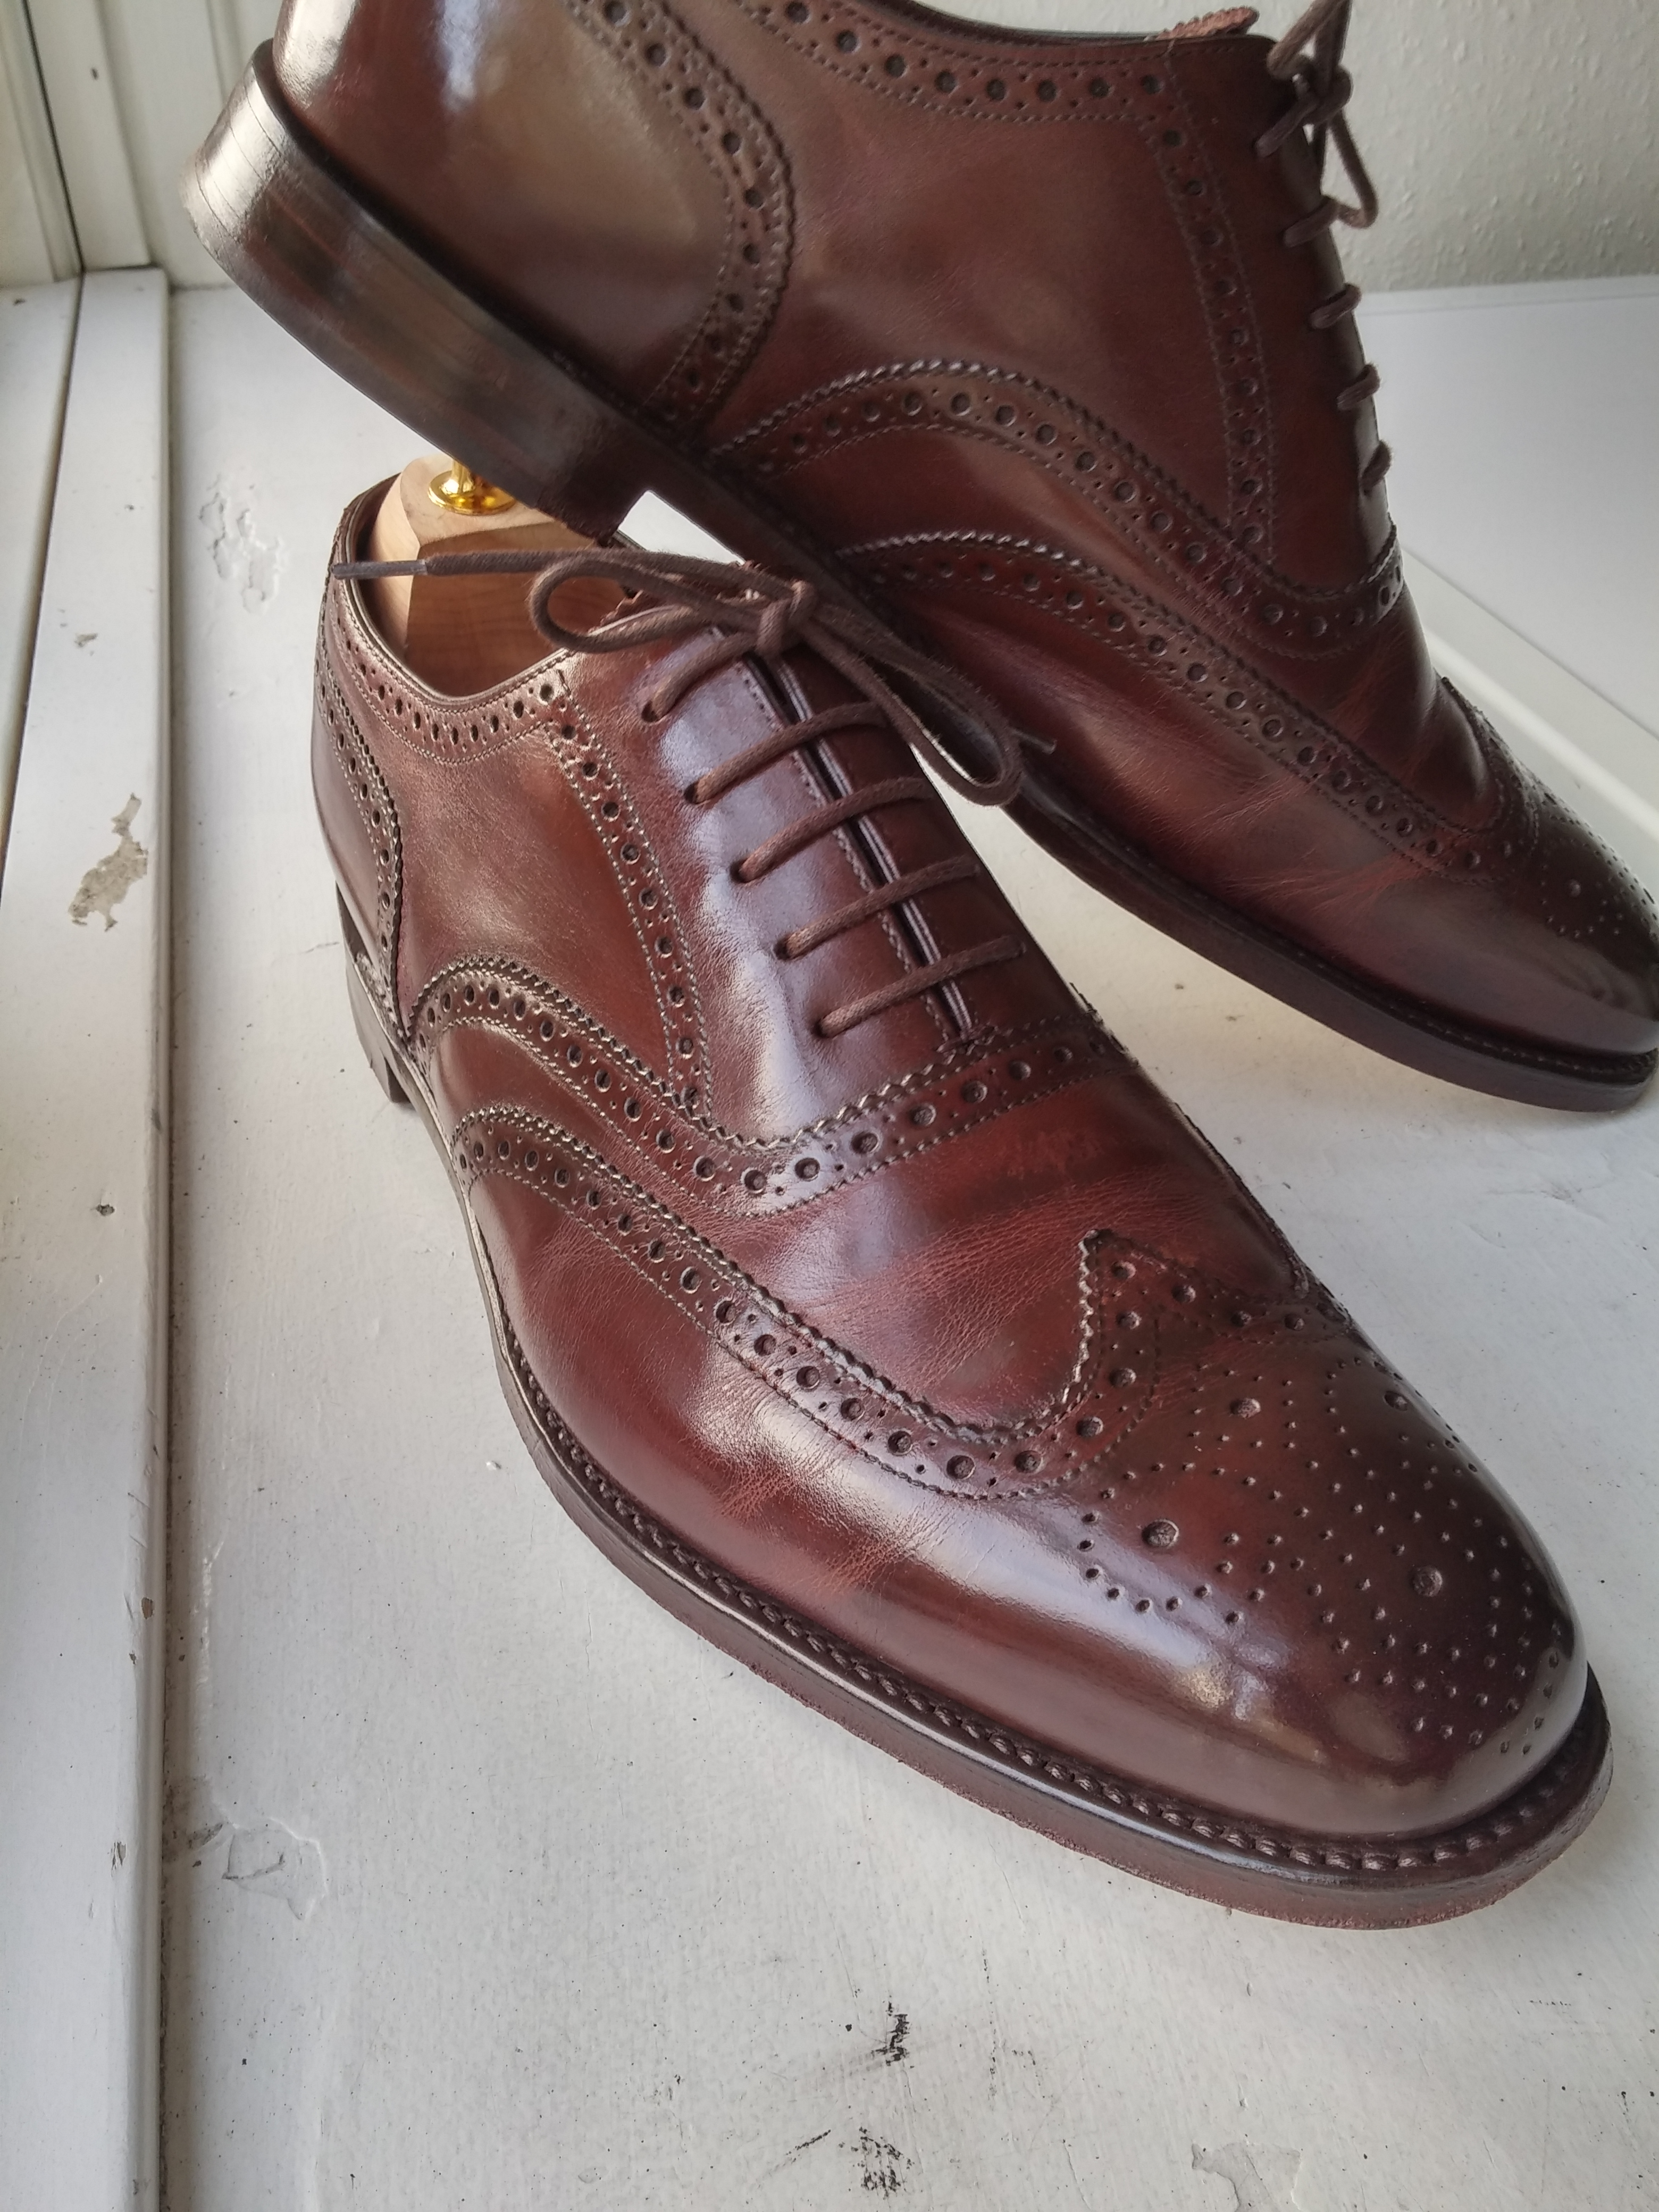 Loake 1880 Buckingham Dark brown. Polished with burgandy saphir shoe polish for almost a year.